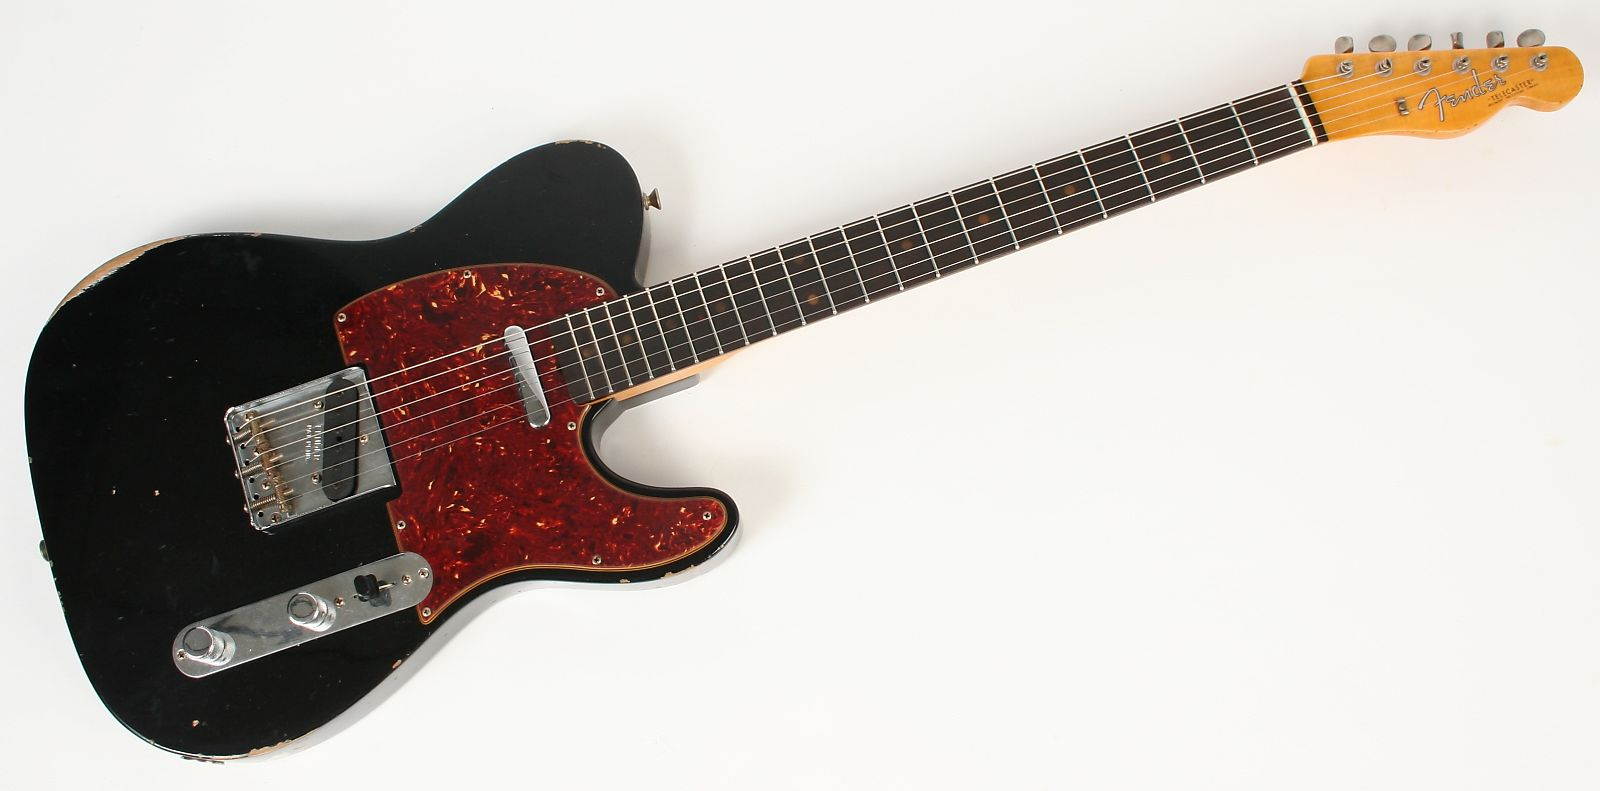 Fender Custom Shop 1961 Relic Telecaster New Black Authorized Dealer Sale On Texas Special Pickups Wiring